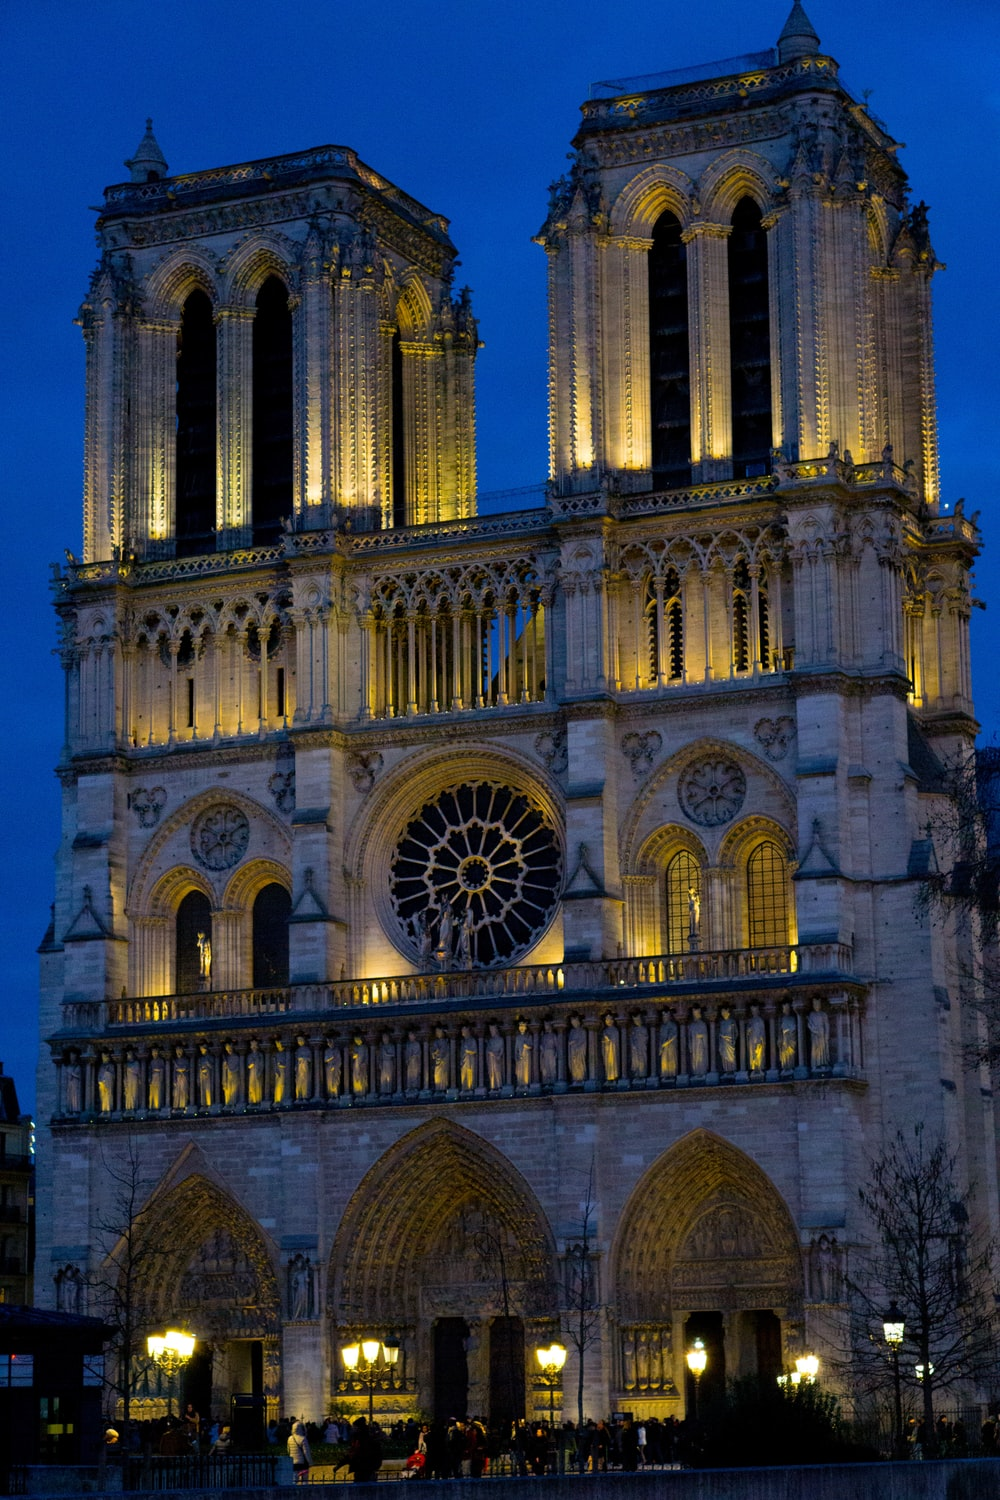 turned-on lights of a cathedral